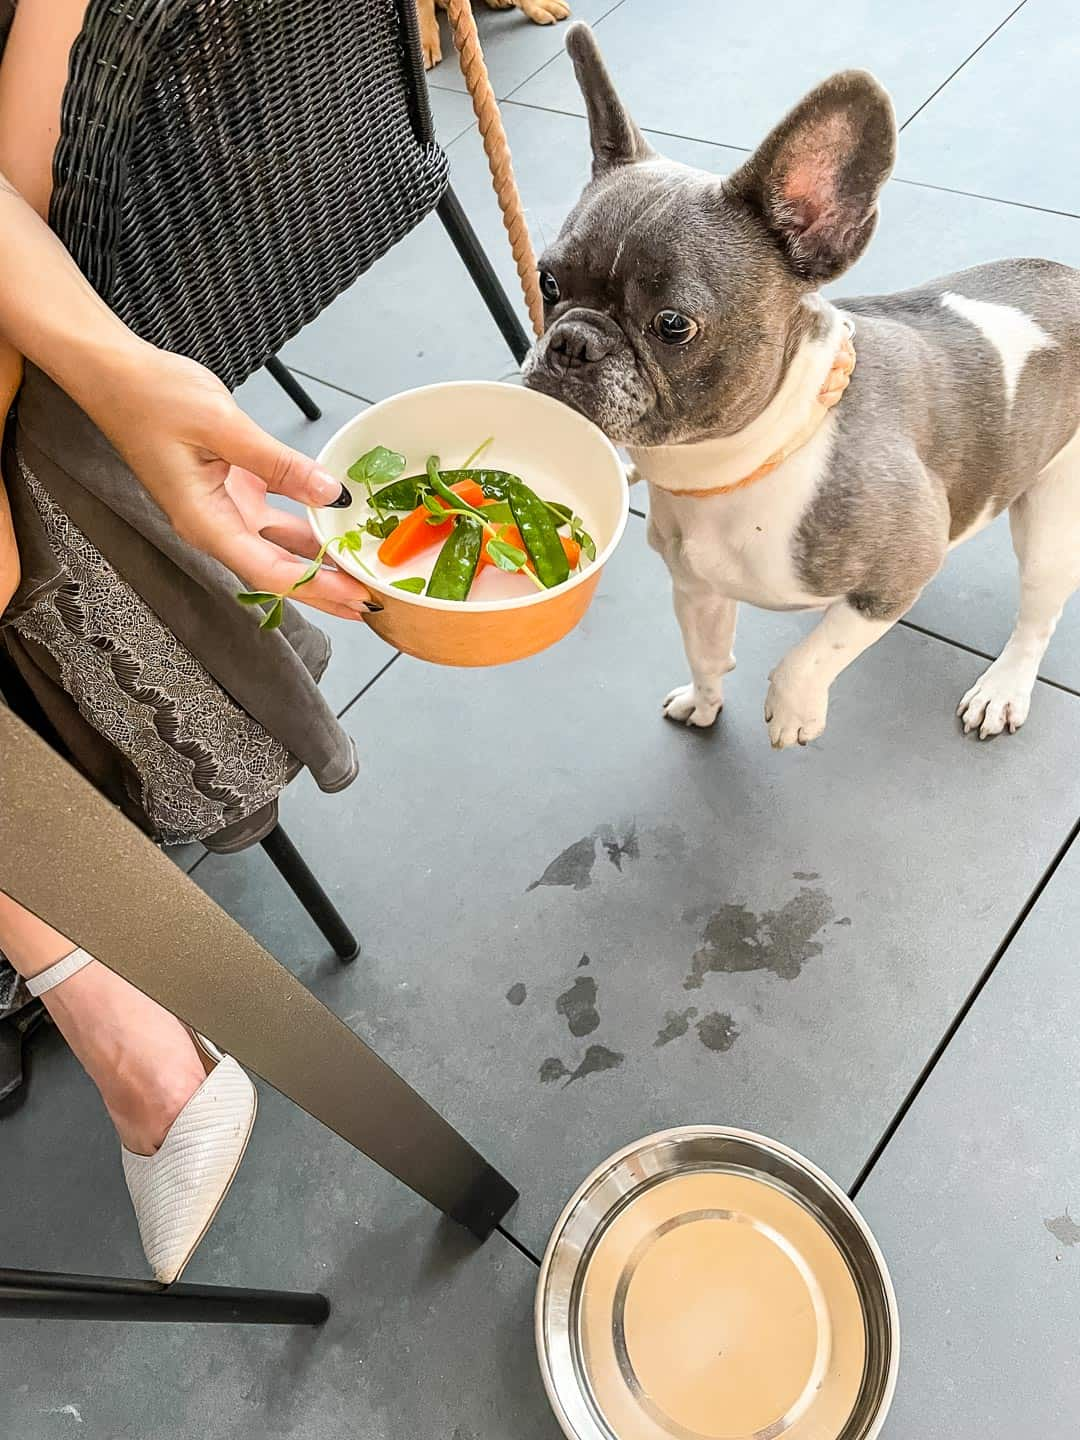 Dinner for dogs at 144 On The Hill